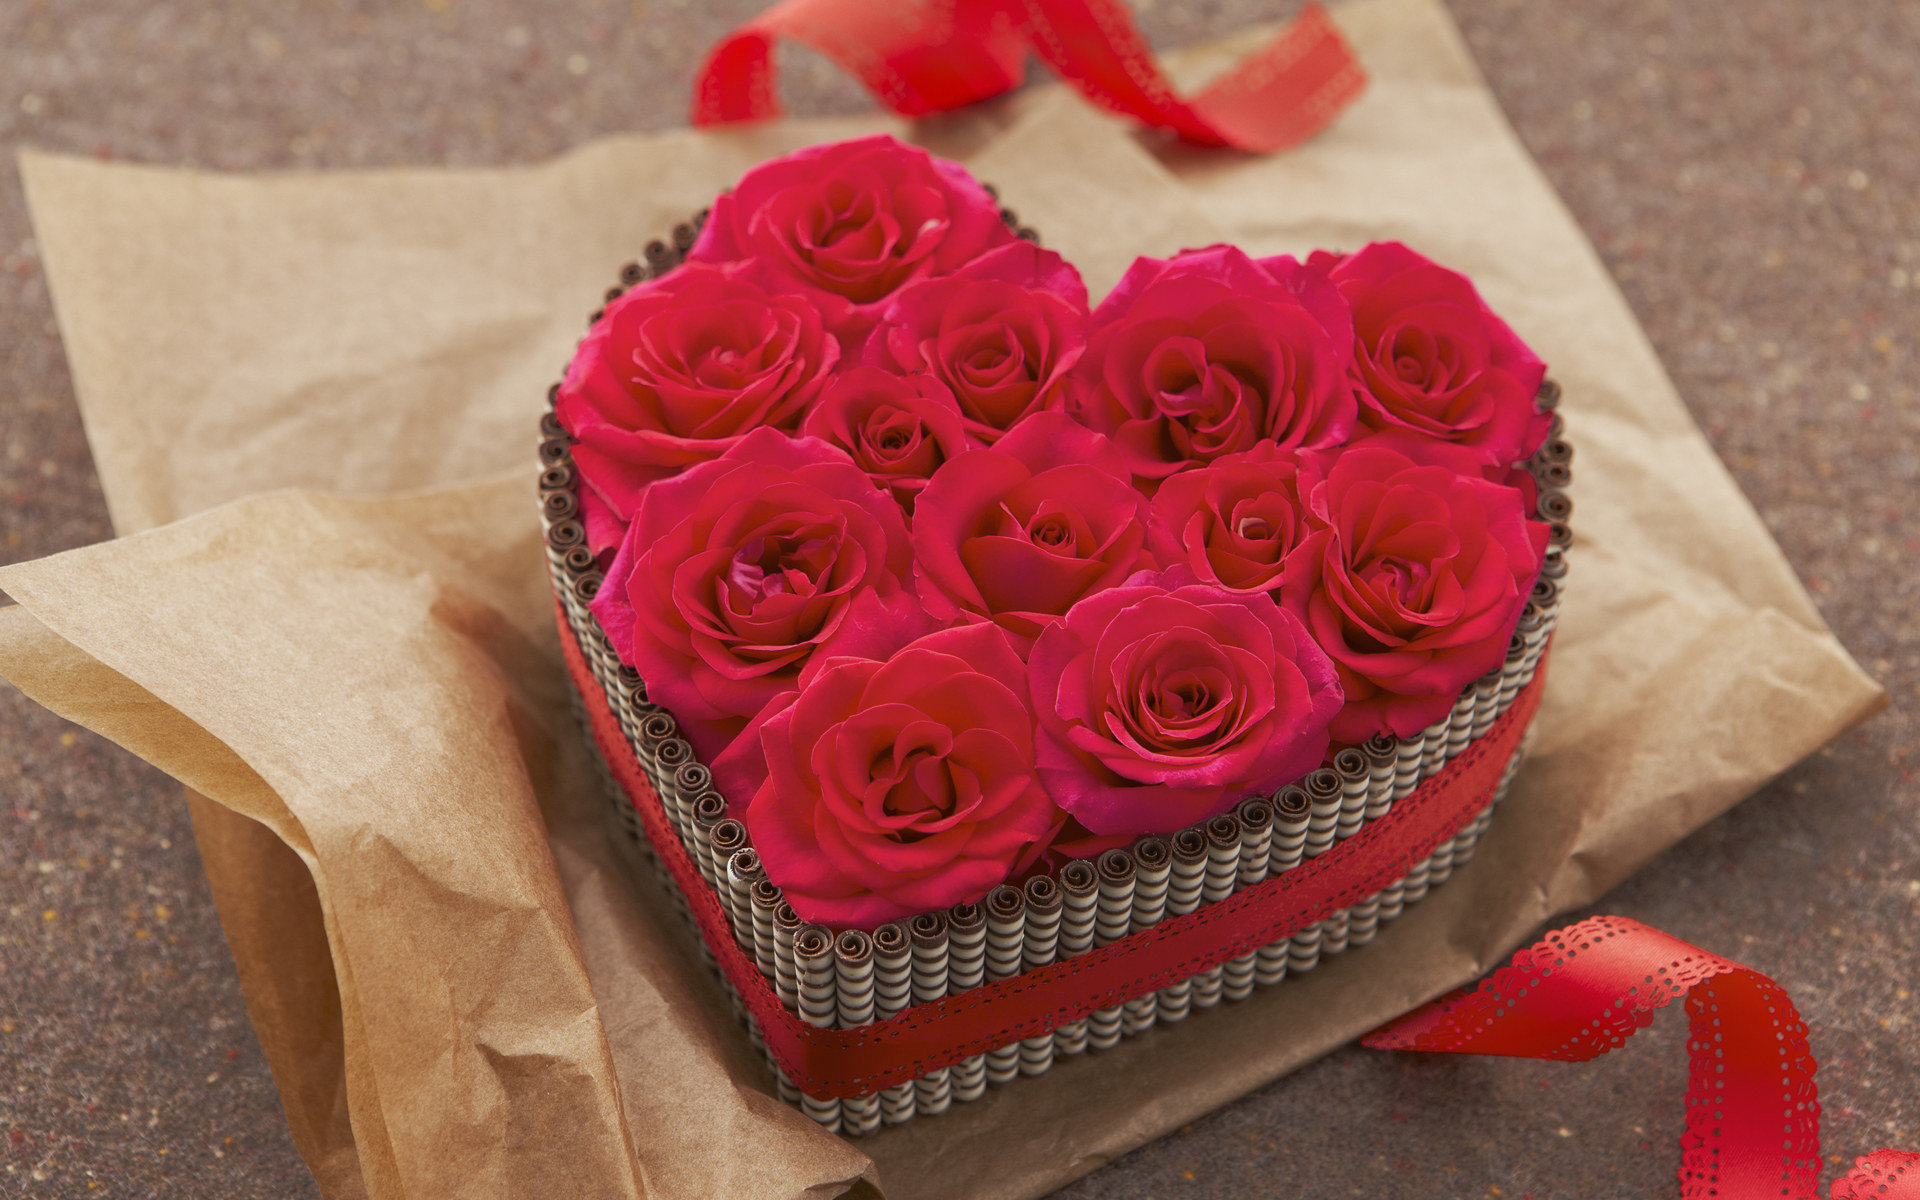 click to free download the wallpaper--Romantic Flowers Picture, a Box of Red Roses, the Best Gift on Valentine's Day 1920X1200 free wallpaper download